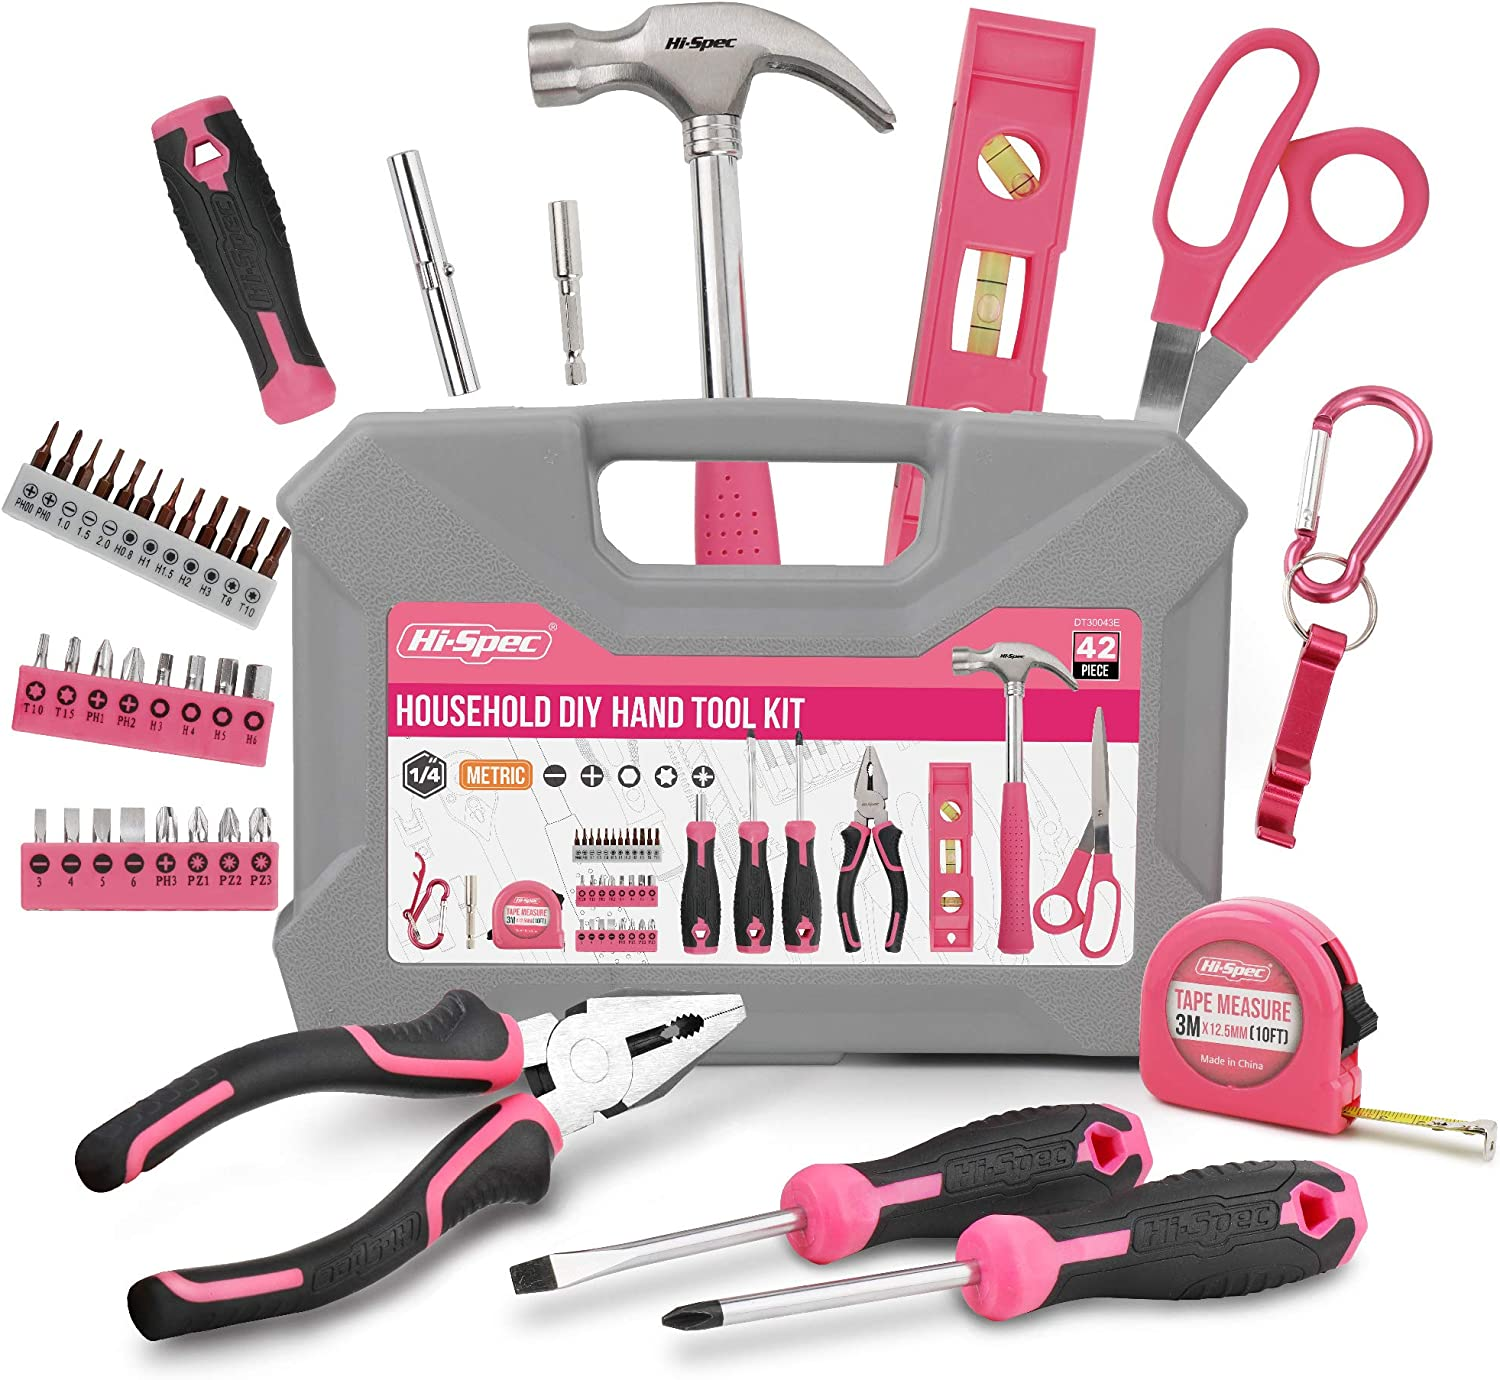 Hi-Spec 42 Piece Household DIY Tool Kit Set. Hand Tools & Precision Screwdriver Bit Set for DIY Repair at Home & The Office. Includes Carabiner & Bottle Opener Key Ring. All in a Carry Case